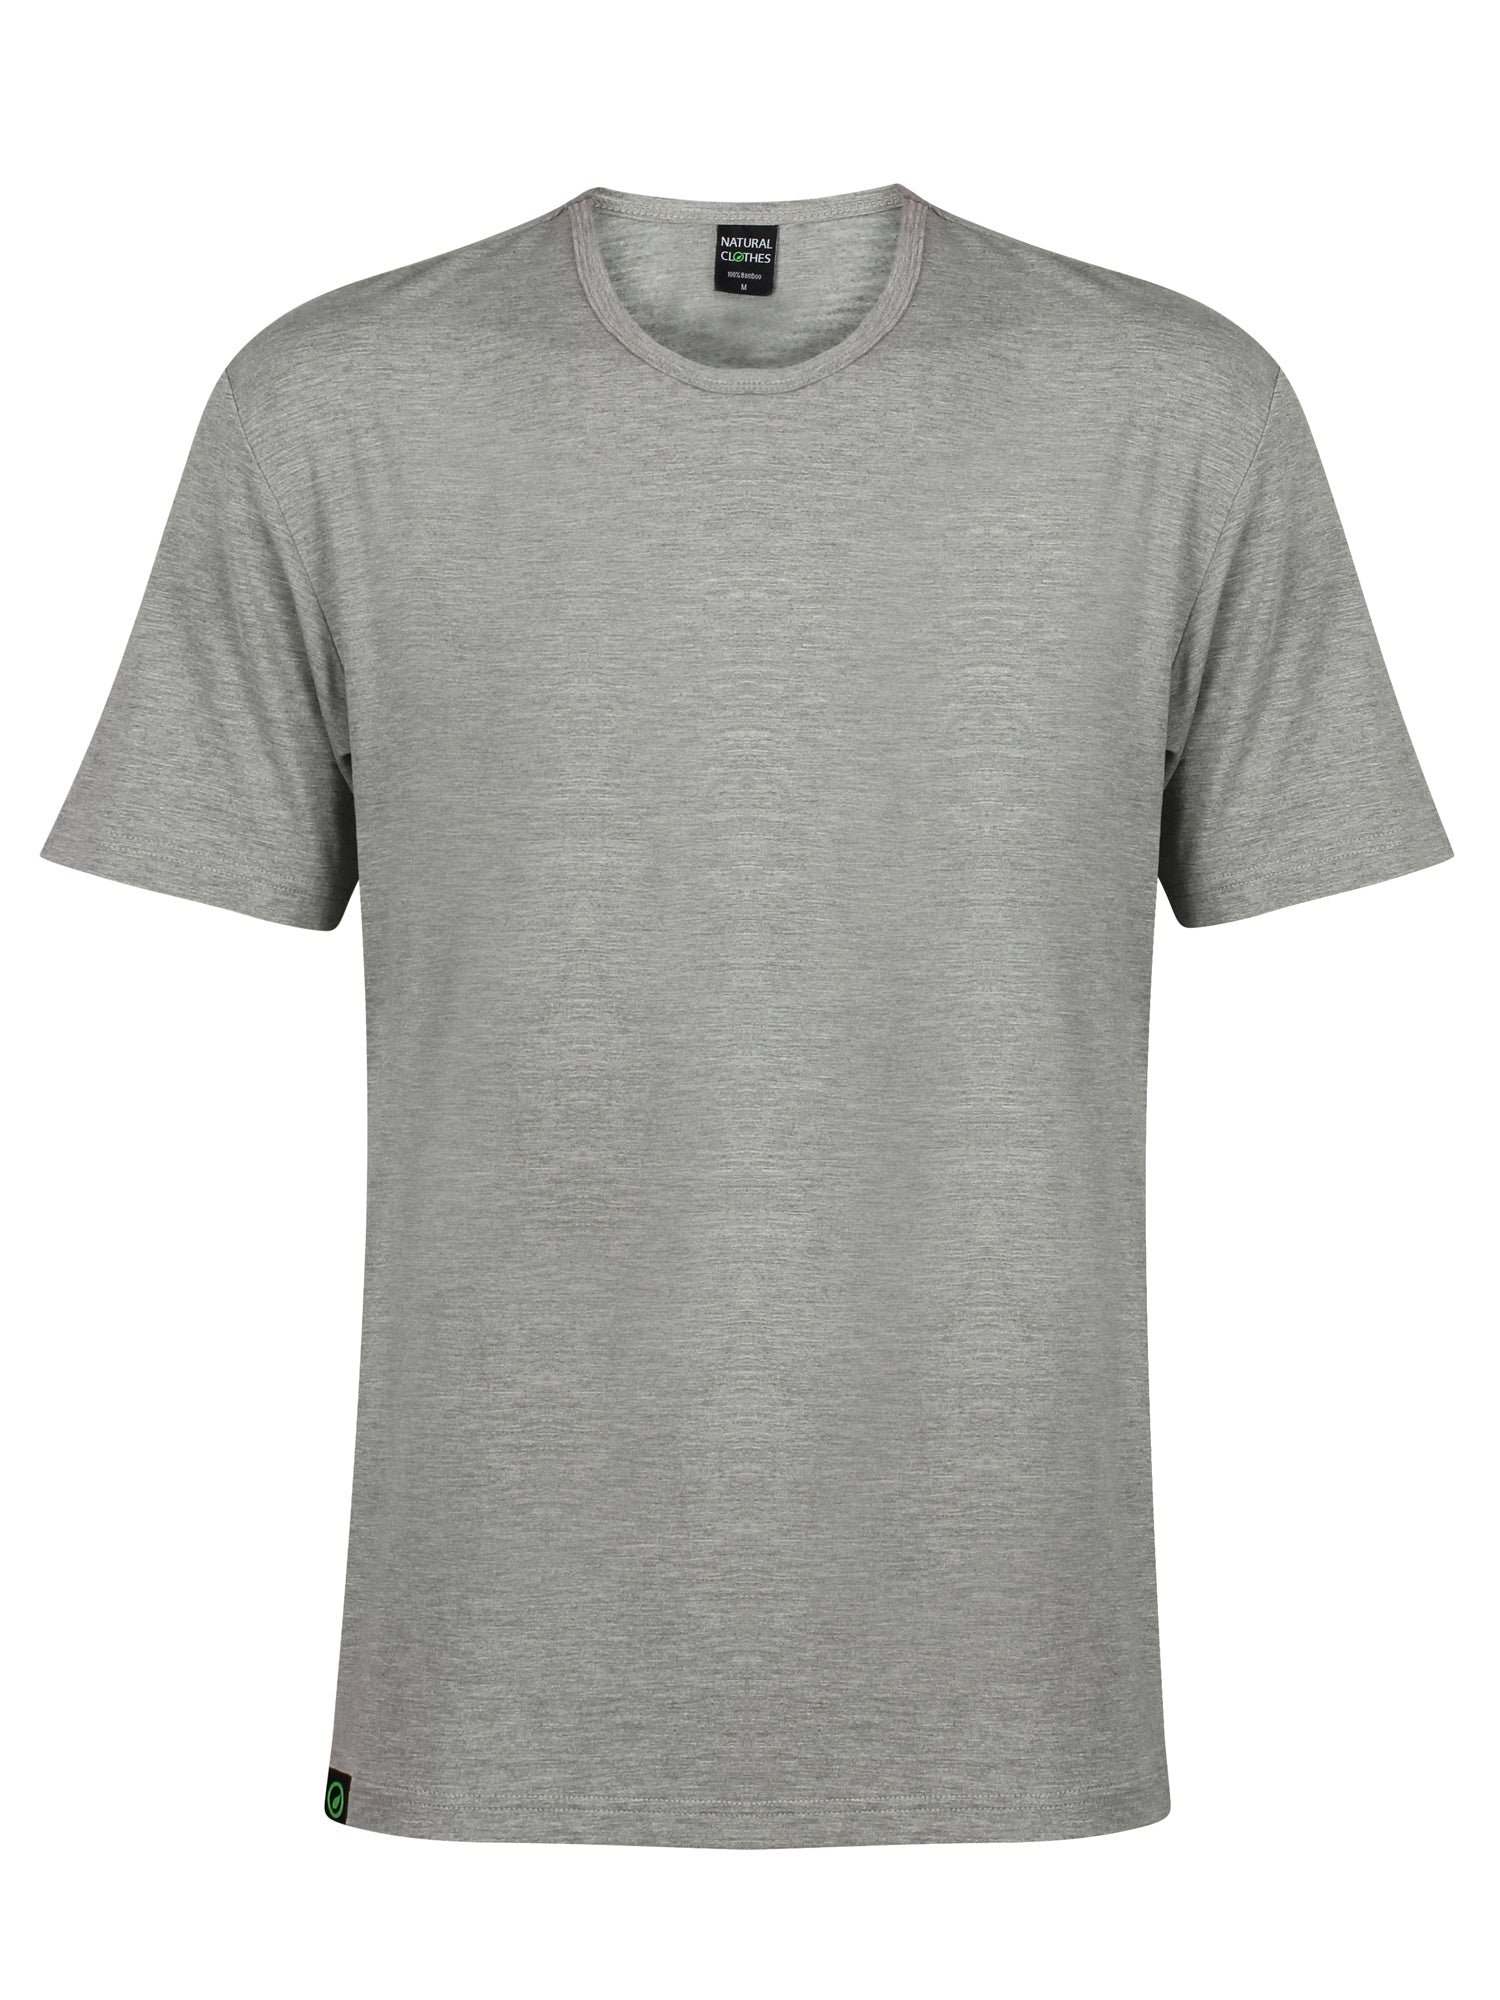 Bamboo T-Shirt Crew Neck Slim Fit Grey - Natural Clothes Bamboo Clothing & Accessories for Men & Women